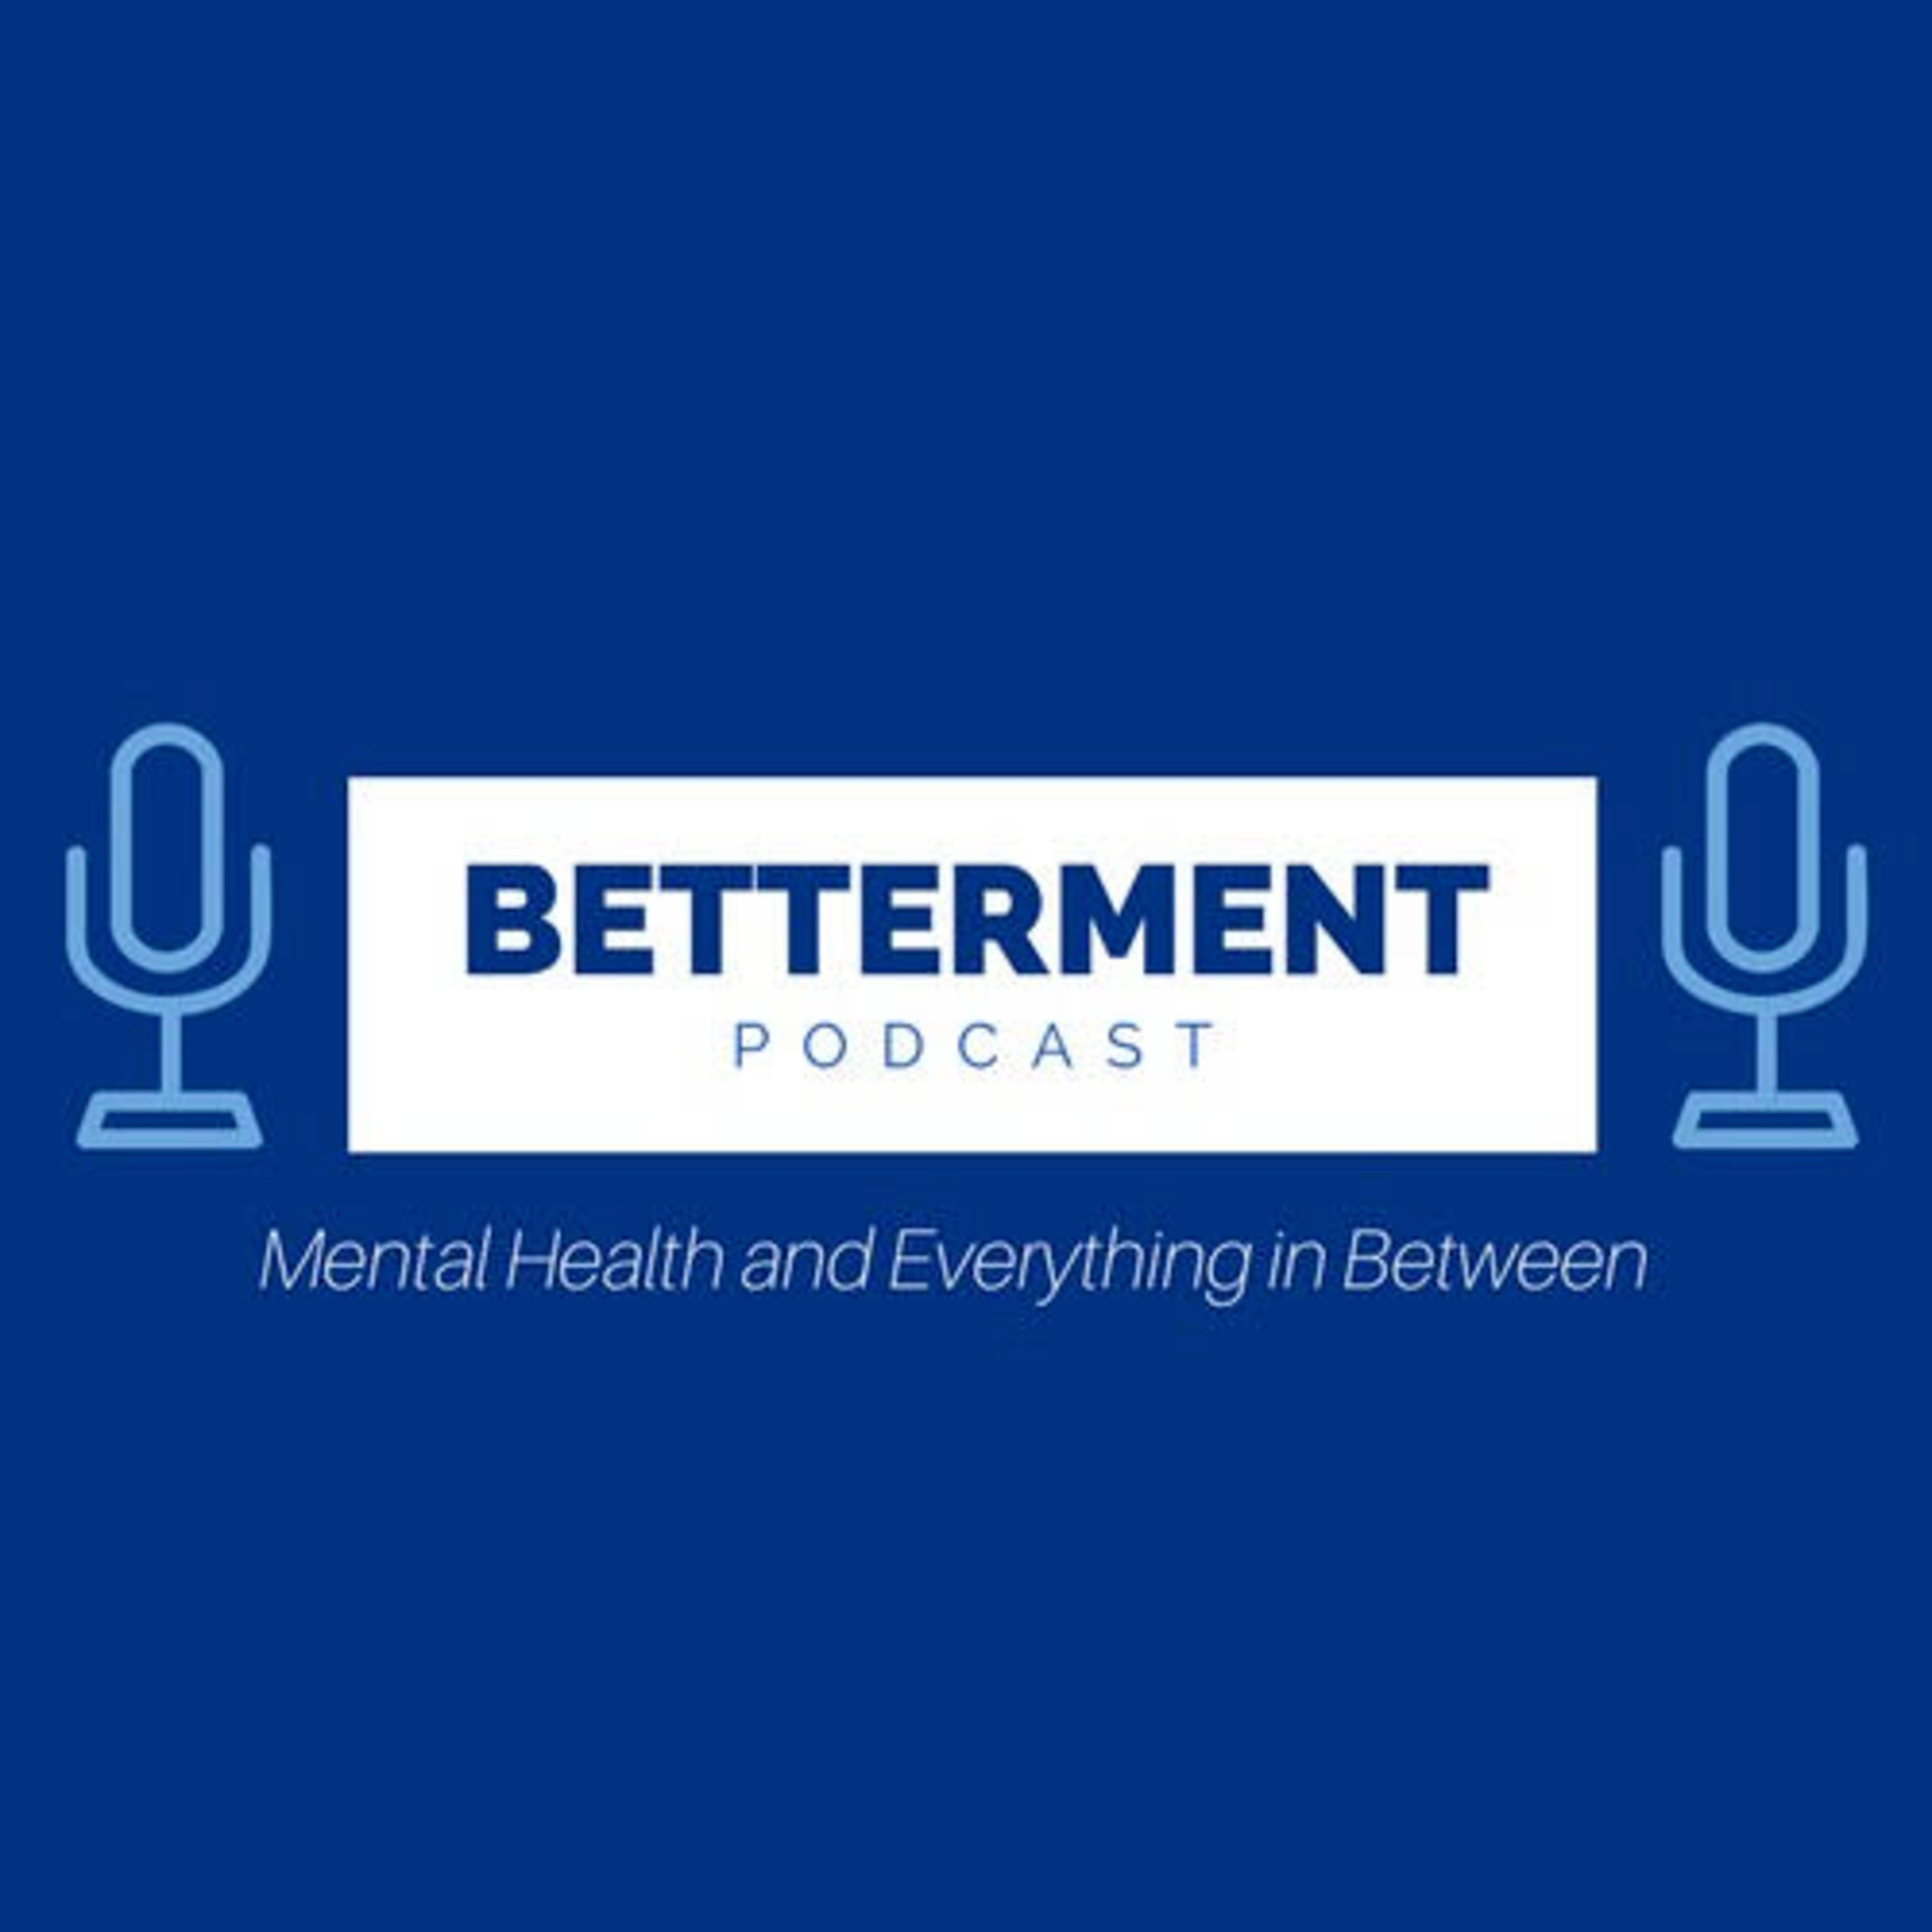 Betterment Podcast Episode 11 - Dealing With Change